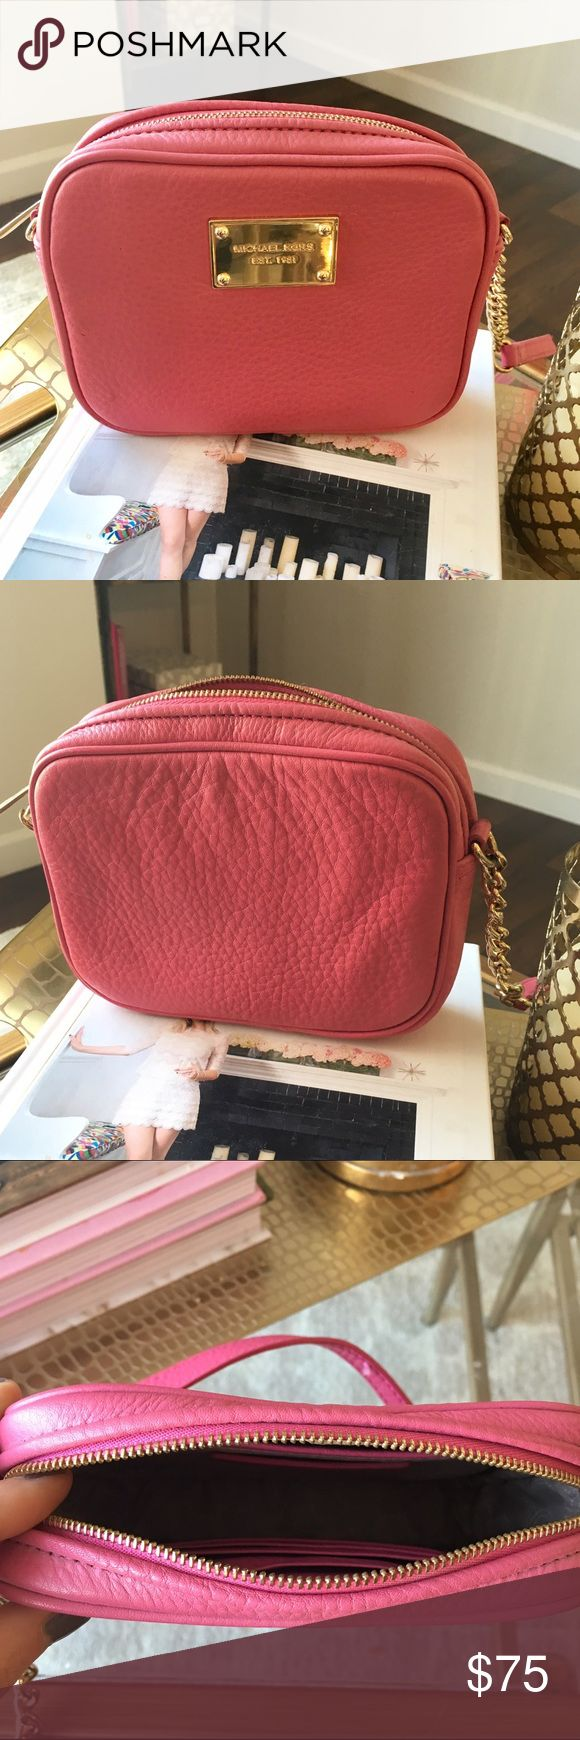 Pink Micheal Kors Jet Set Crossbody Bag Adorable bag with classic MK gold hardware and chain extension to support strap. In great condition, used no more than just a few times. Interior is like new as well, featuring zip pocket and 4 card slots. Not getting any love in my closet, ready for a new home! Michael Kors Bags Crossbody Bags